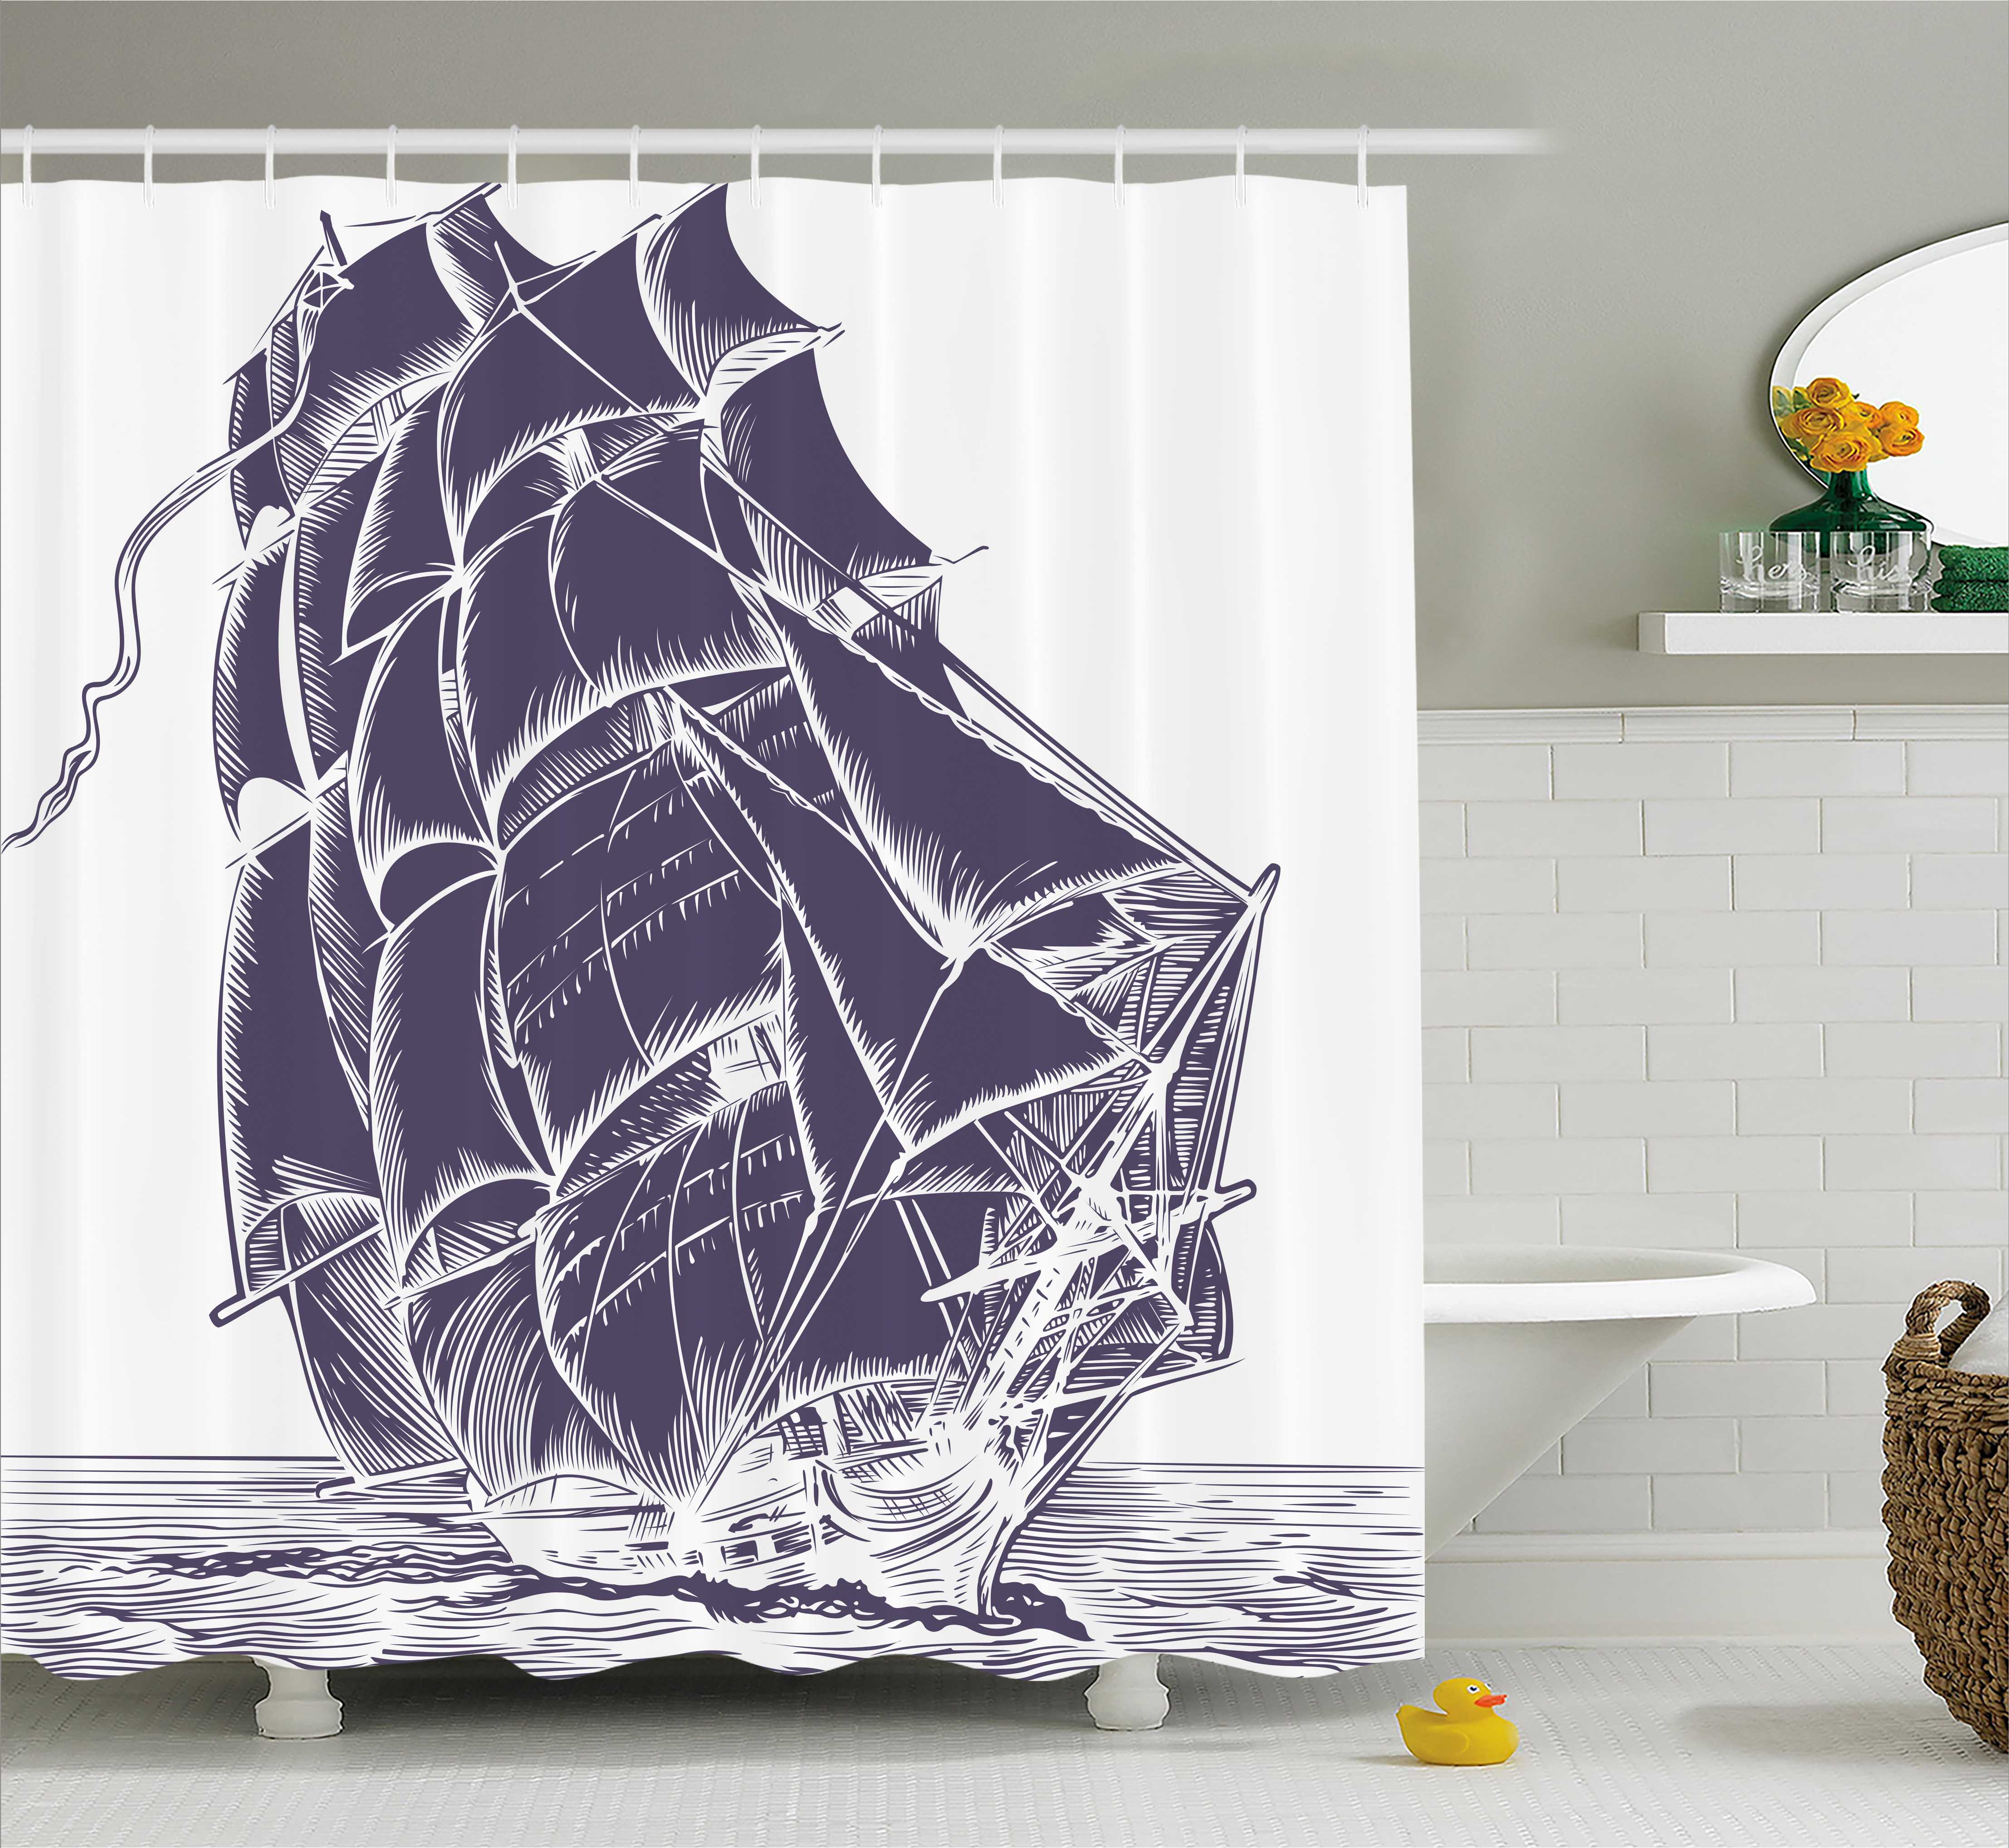 Nautical Shower Curtain, Old Sail Boat in the Ocean on White Background Pirate Tresure Retro Illustration, Fabric Bathroom Set with Hooks, 69W X 70L Inches, Cadet Blue, by Ambesonne